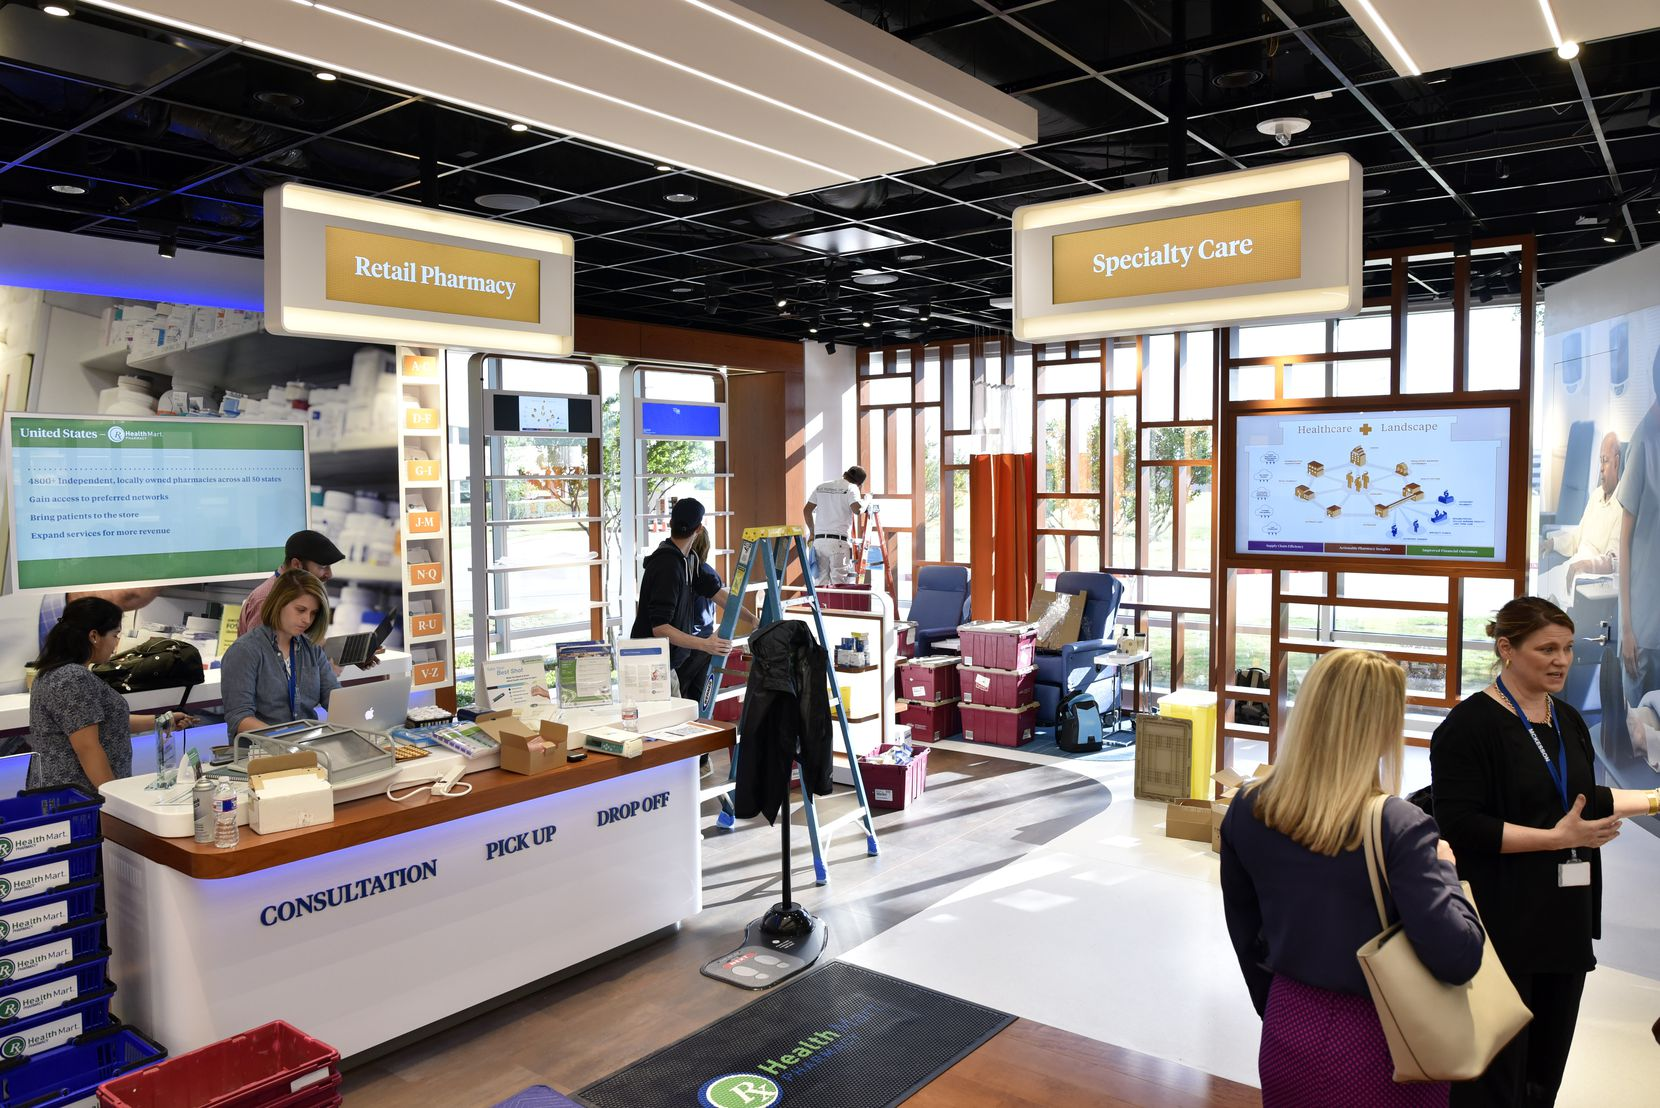 McKesson employees and construction workers prepare the company's Vision Center for the grand opening of the new McKesson offices in Irving,. The museum-like display is used to  educate clients and employees about company operations.